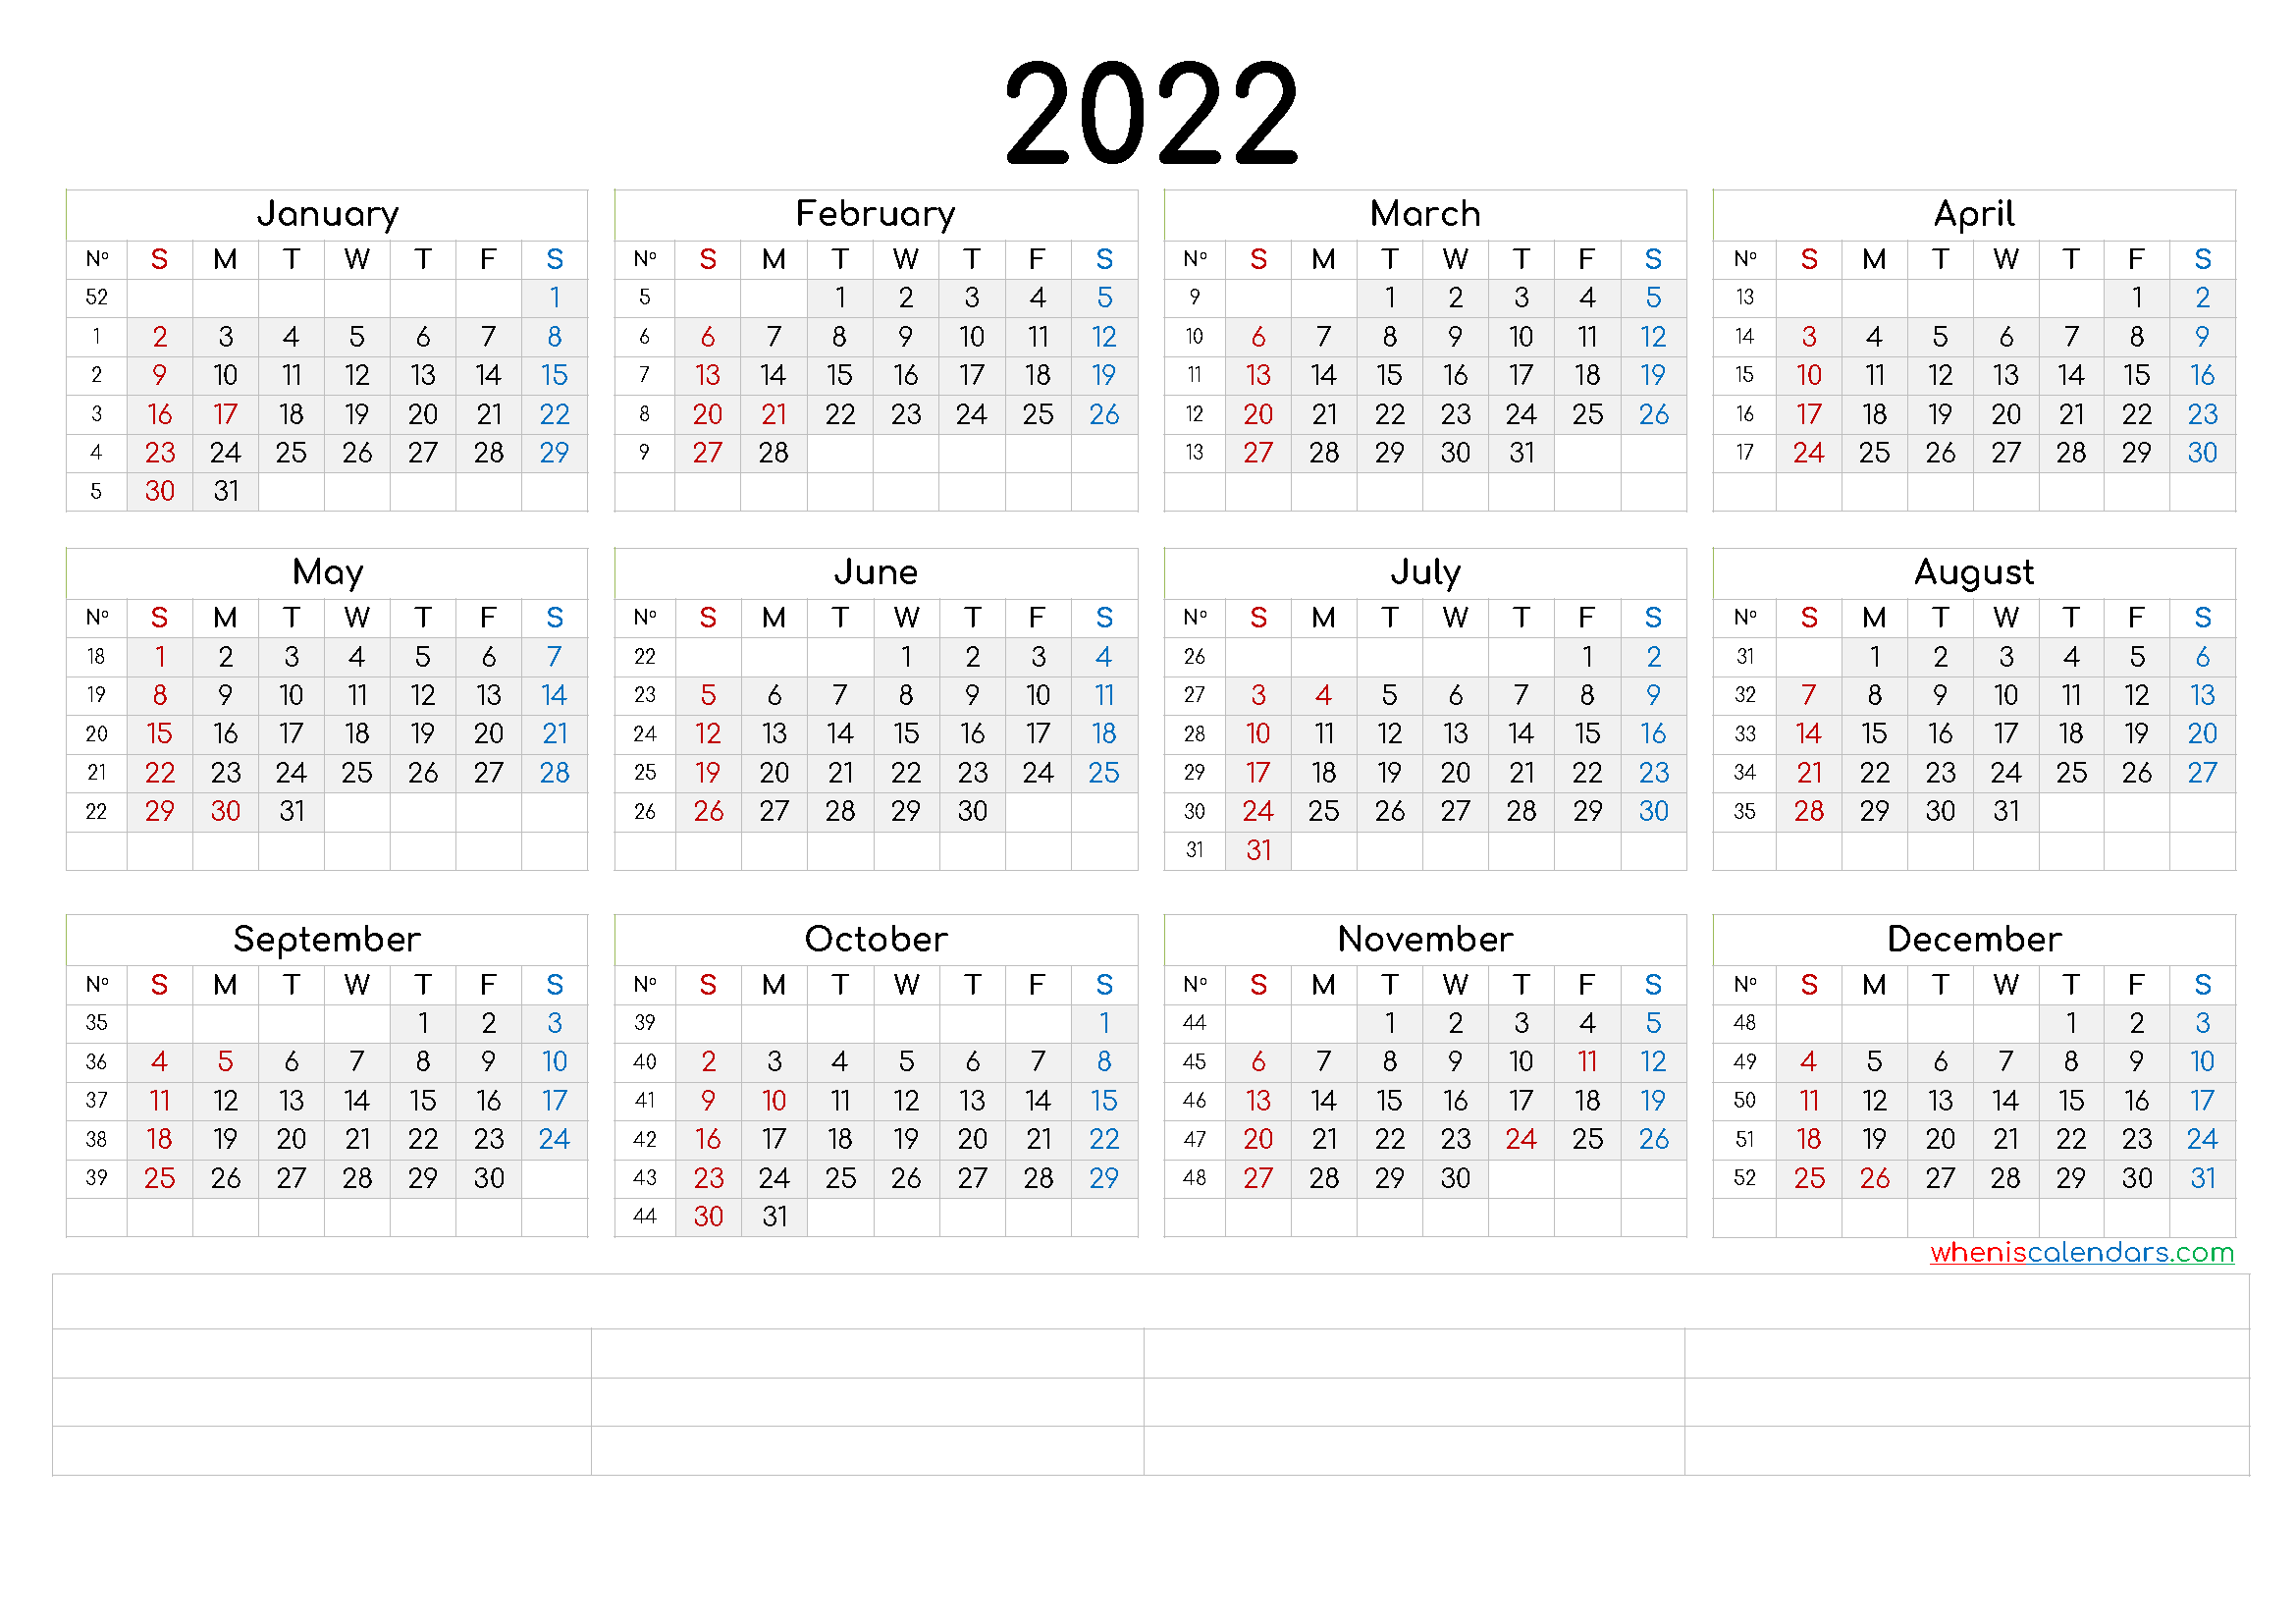 Printable 2022 Calendar by Month